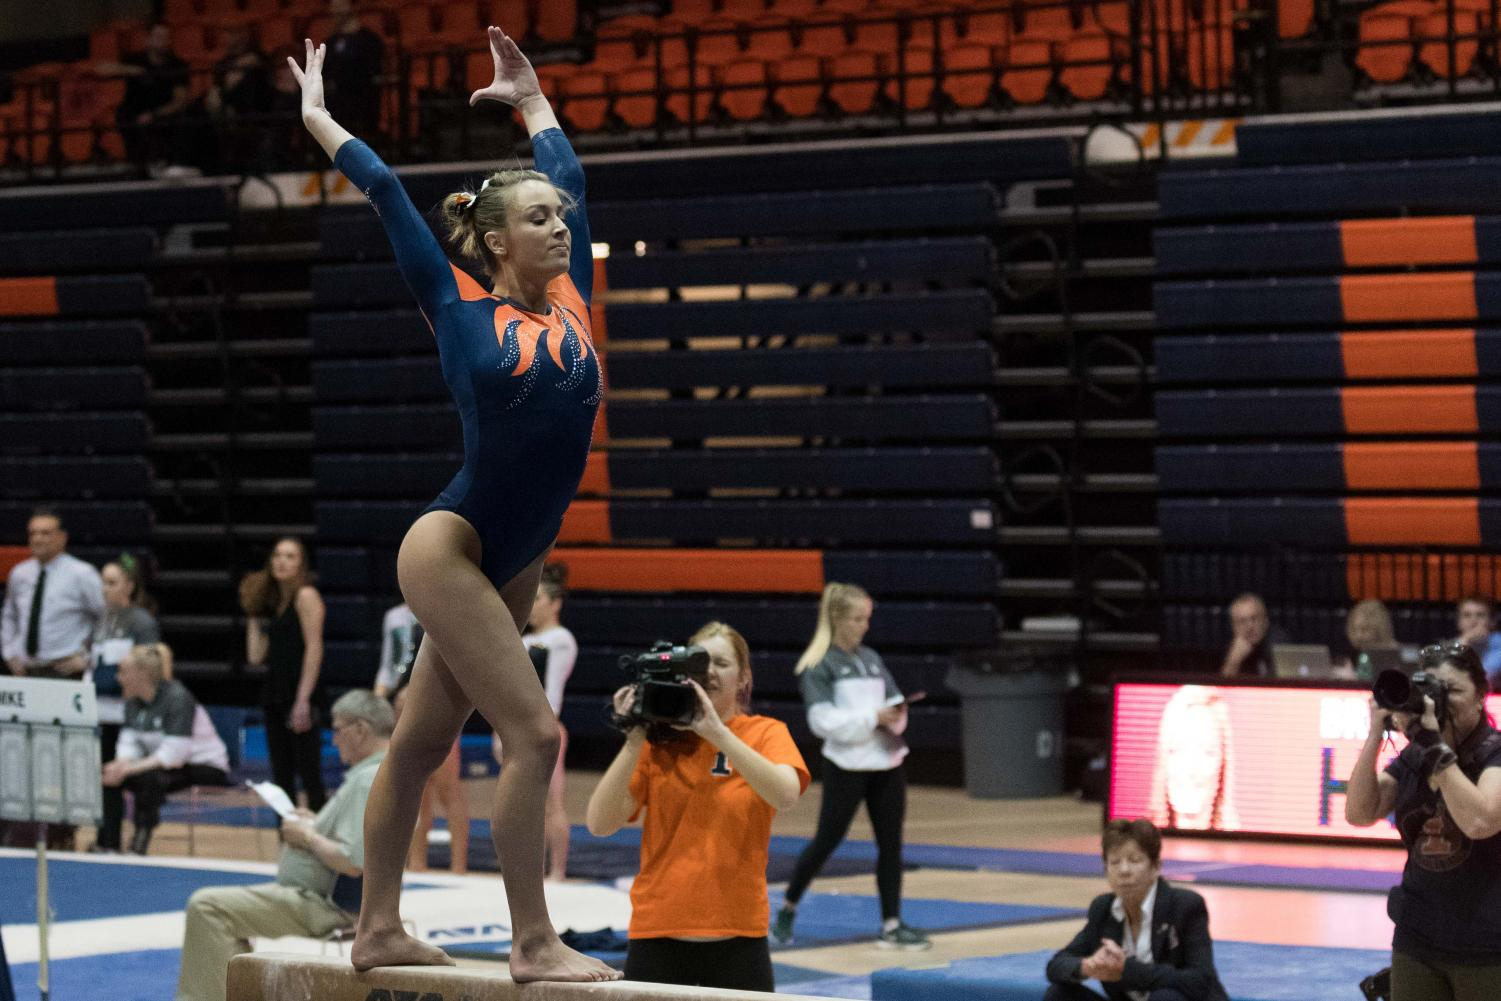 Bridget Hodan competes on beam against Michigan State in Huff Hall on February 17.